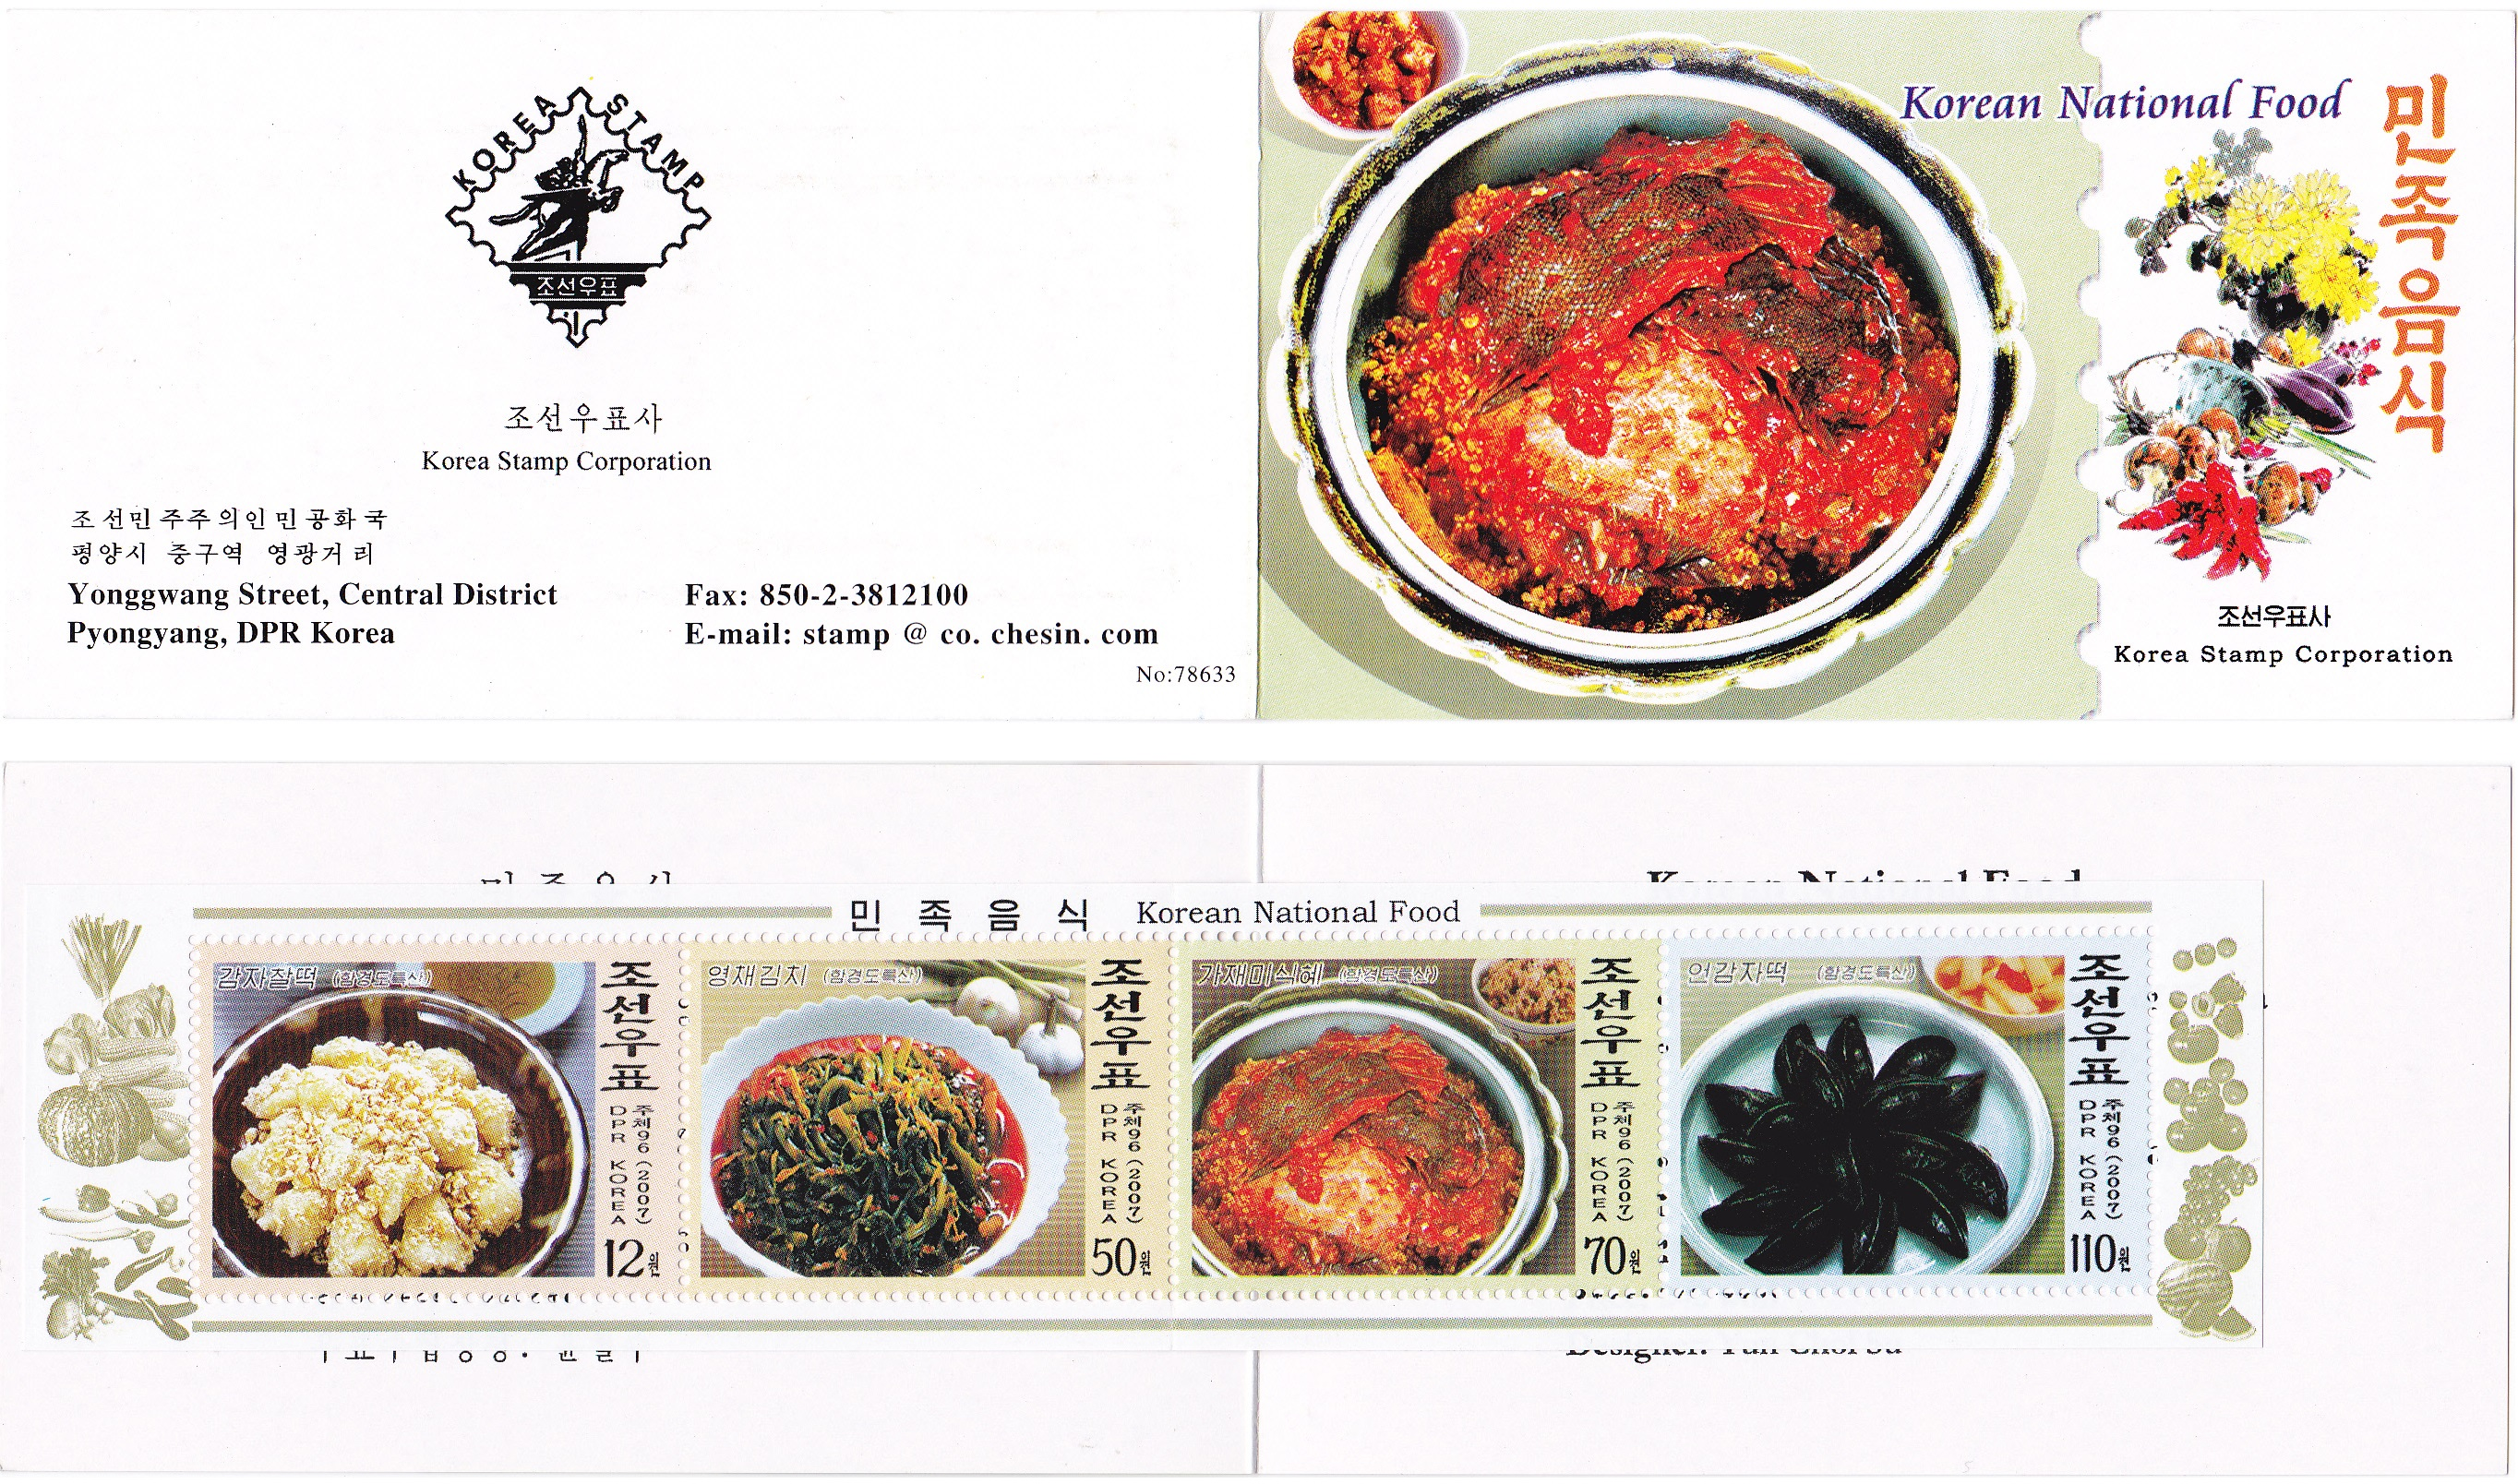 L9036 korea national food stamp booklet with diet 2007 l9036 l9036 korea national food stamp booklet with diet 2007 forumfinder Gallery